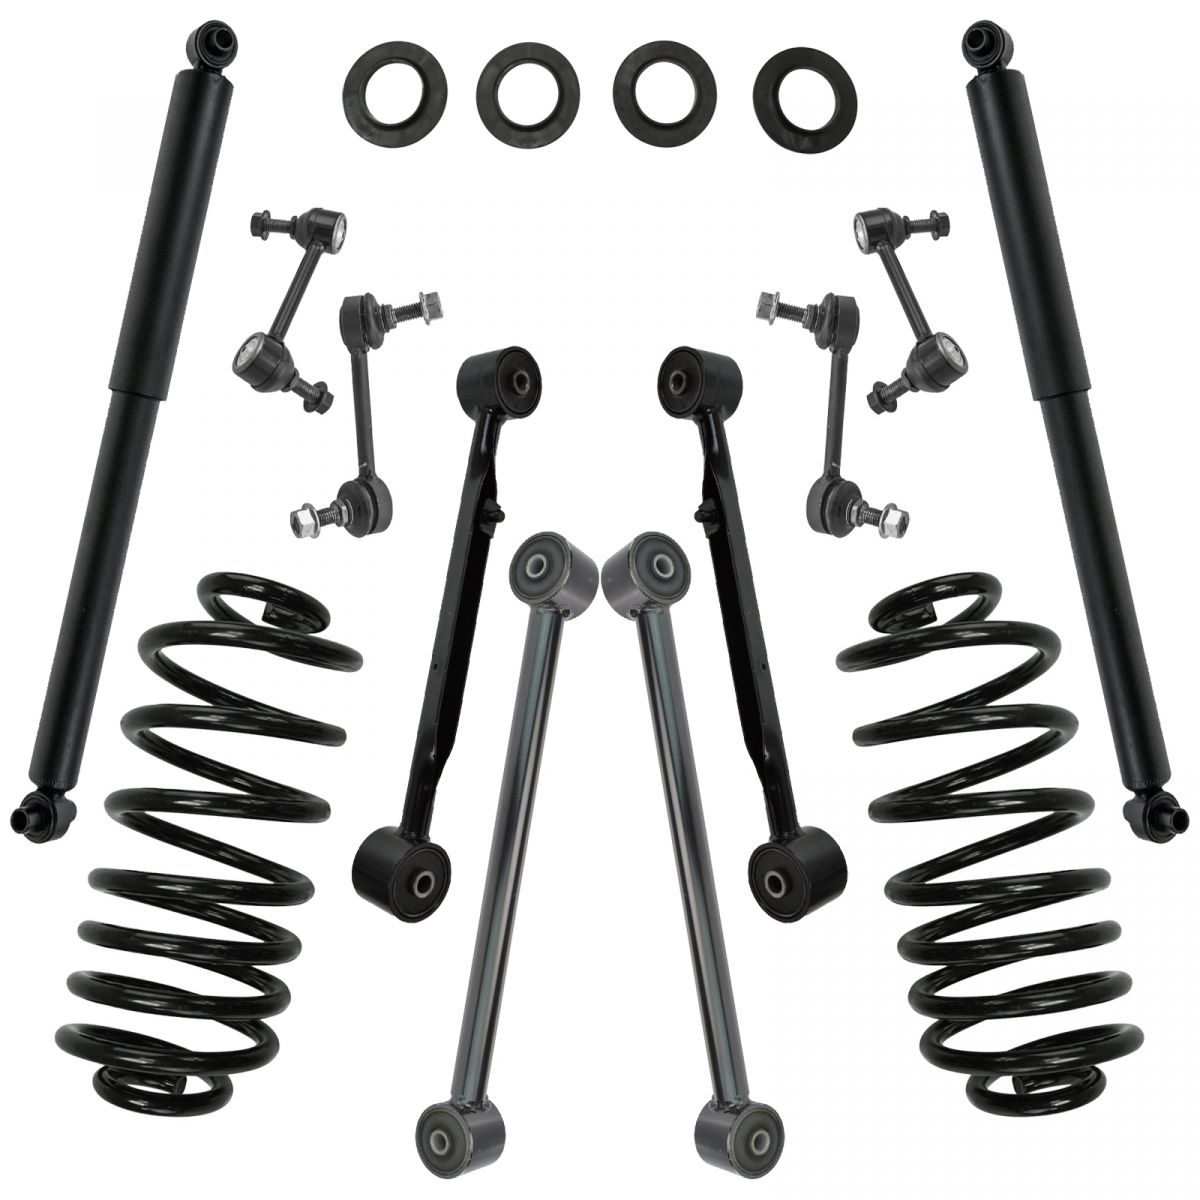 Sway Bar Links Kit For 2010 2011 2012 2013 Lexus RX350